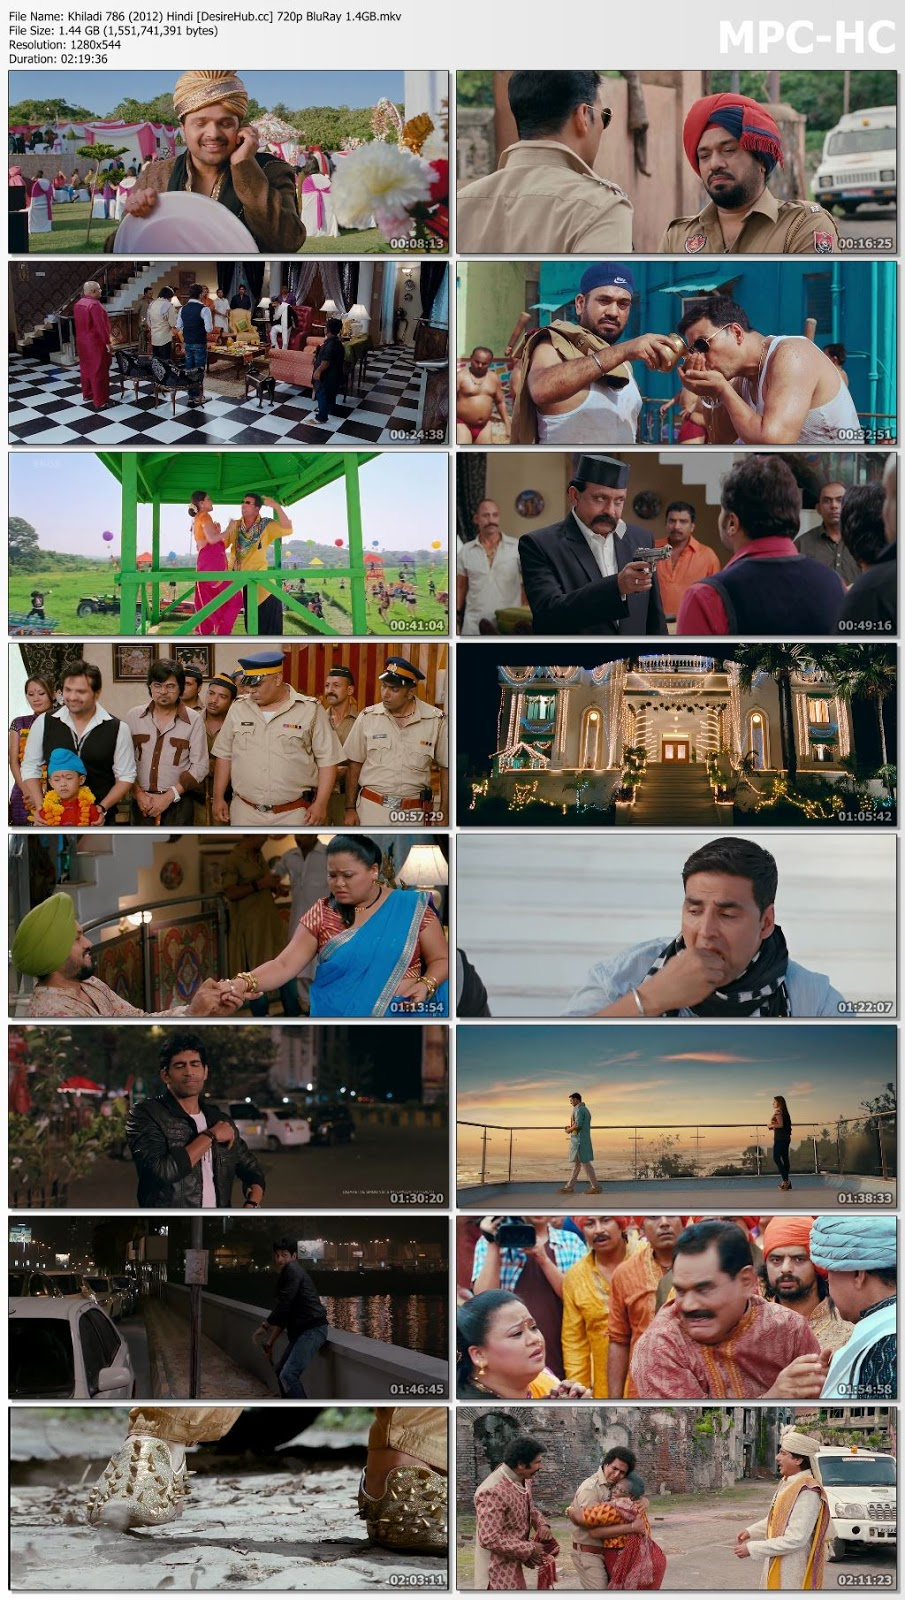 Khiladi 786 (2012) Hindi 480p BluRay 400MB Desirehub